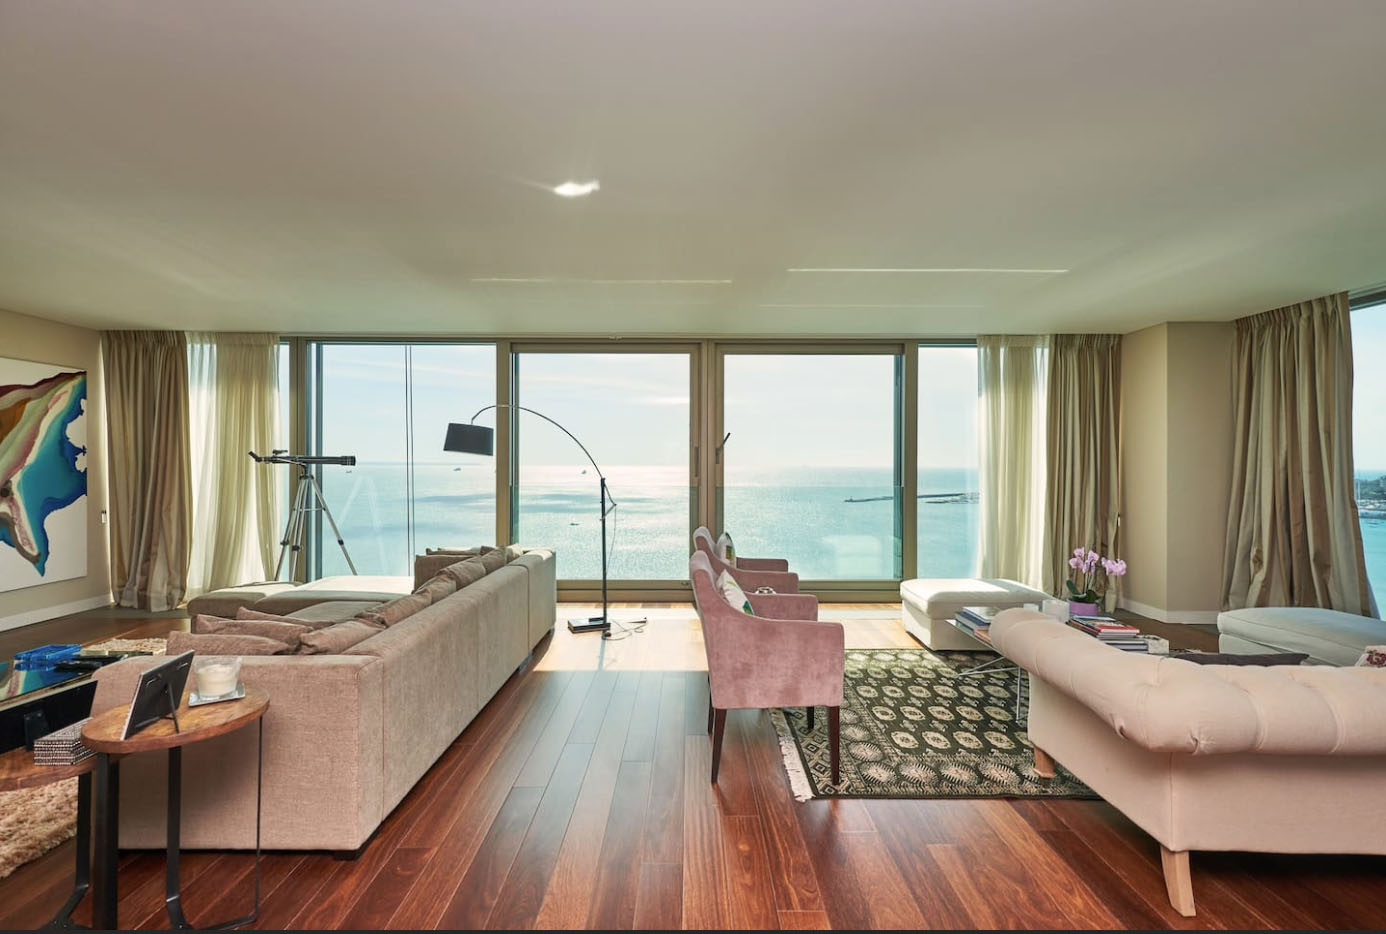 LUXURY BEACH PENTHOUSE CASCAIS